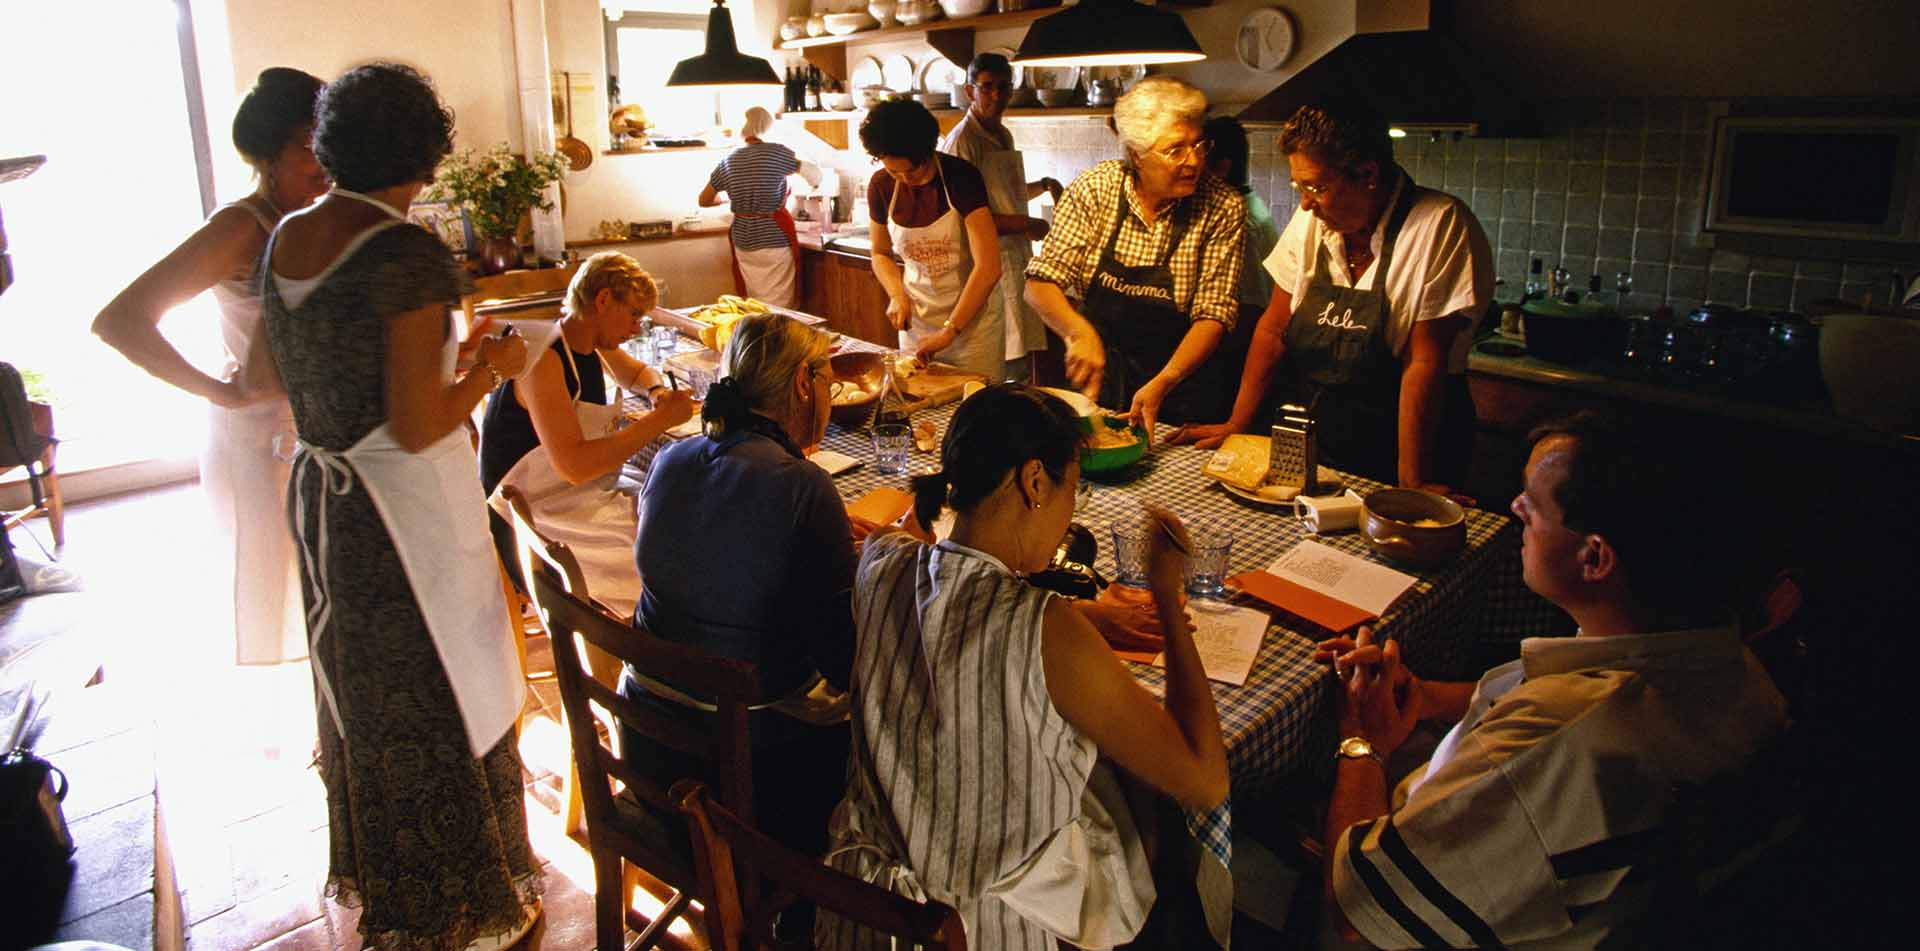 Europe France Provence French cooking class in a private local family home - luxury vacation destinations